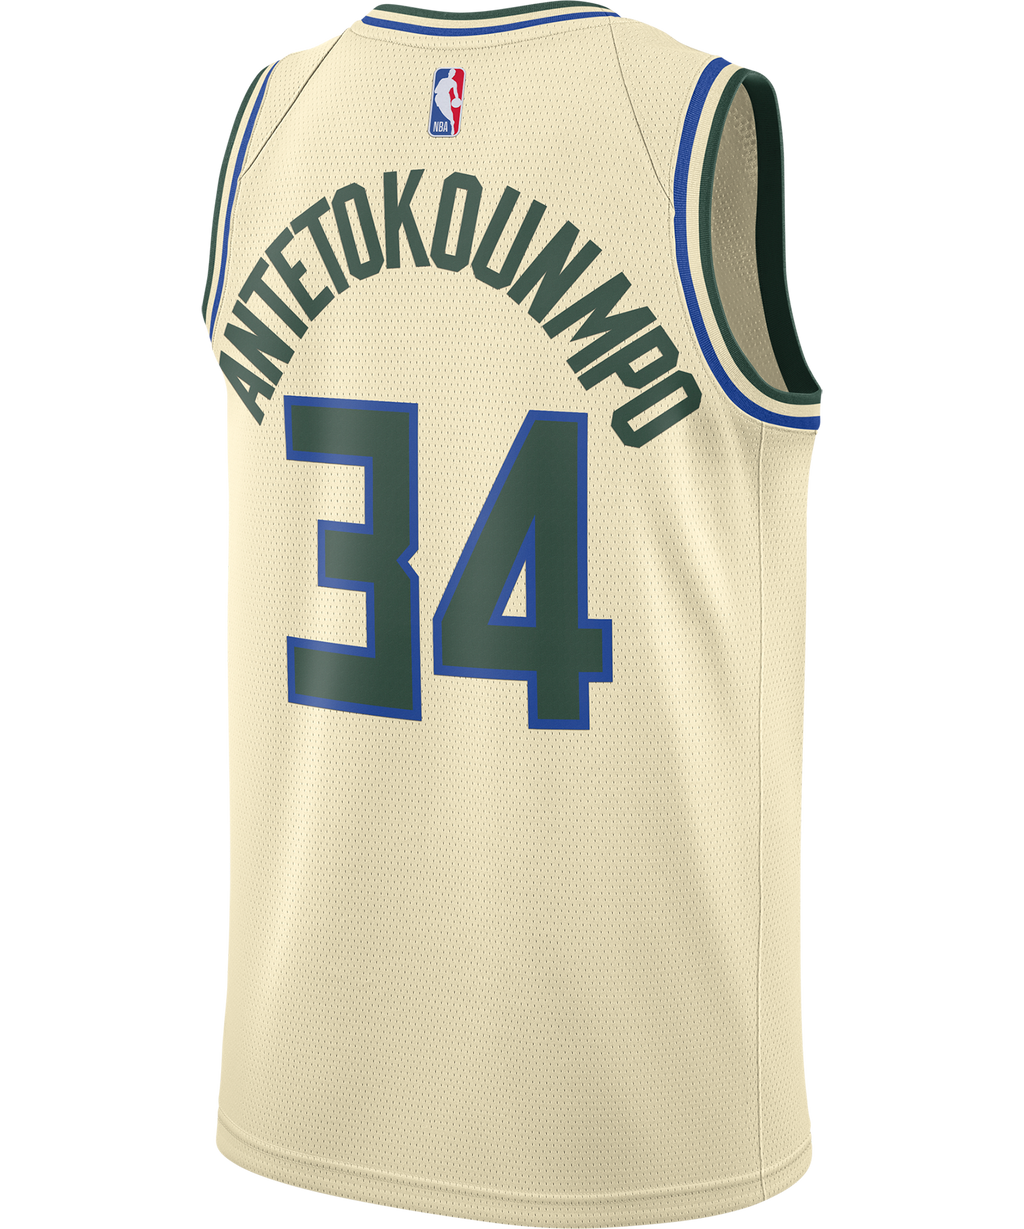 Giannis Antetokounmpo Milwaukee Bucks Nike City Edition Jersey 19/20